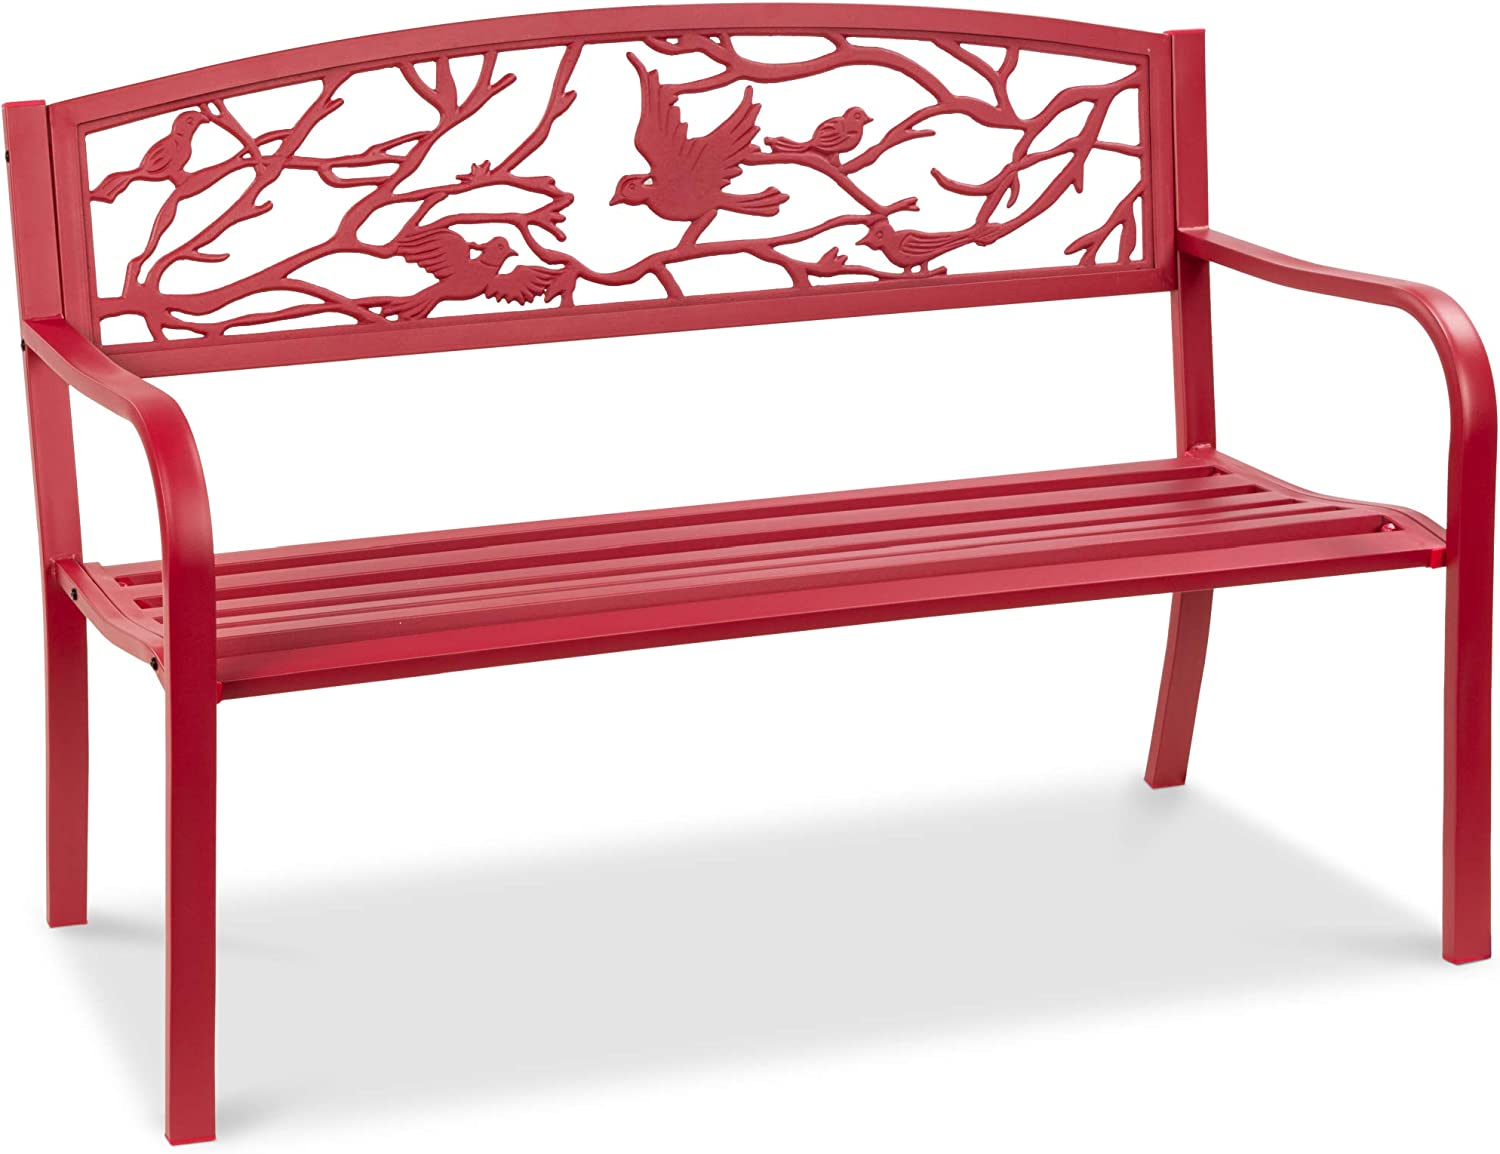 Best Choice Products Outdoor 8in Steel Park Bench Porch Chair Yard  Furniture w/Pastoral Bird Design Backrest, Slatted Seat - Red